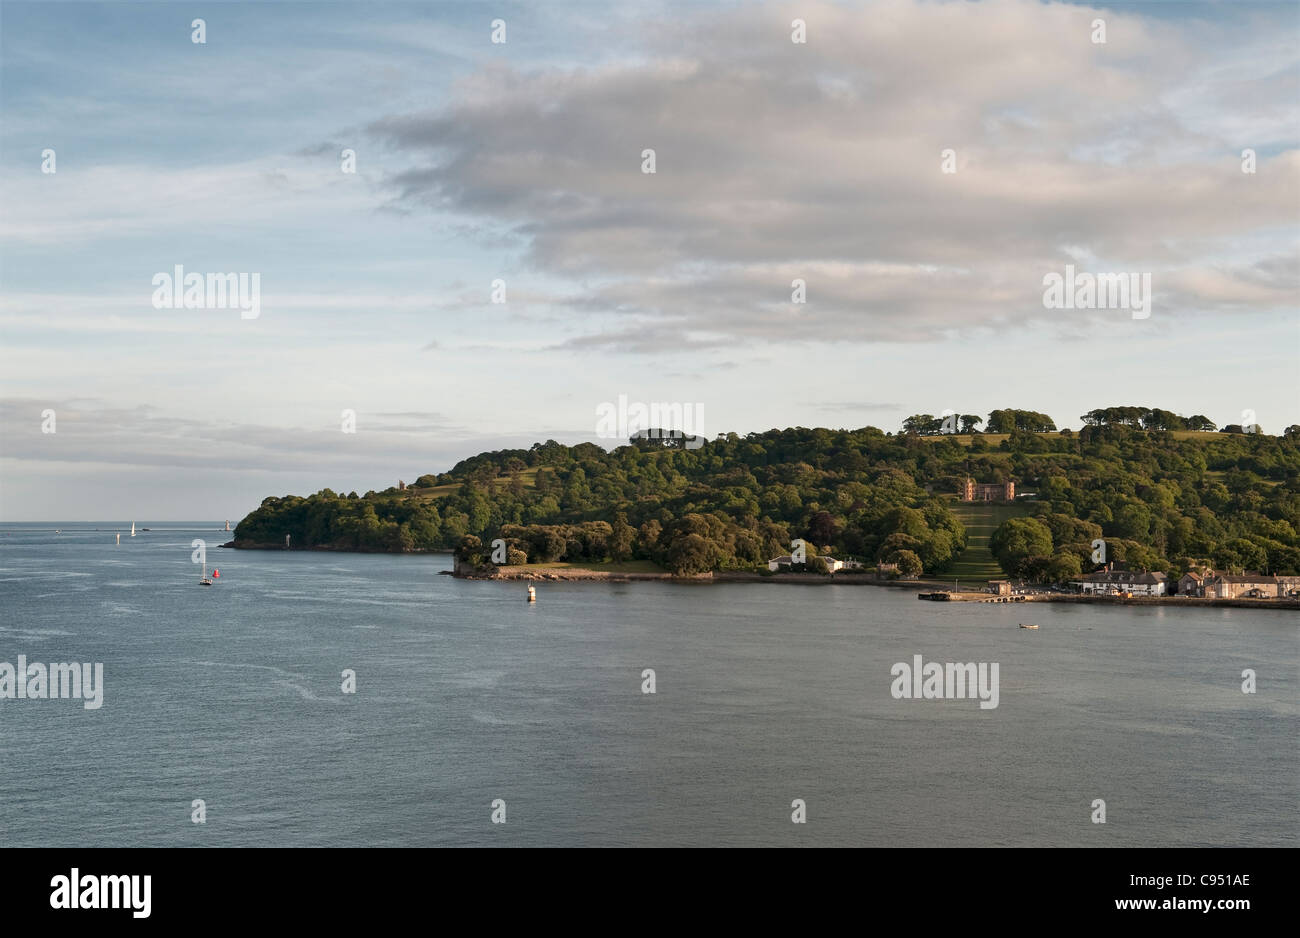 Mount Edgcumbe and the Rame Peninsula, as seen from Devonport, Plymouth, across the River Tamar Stock Photo